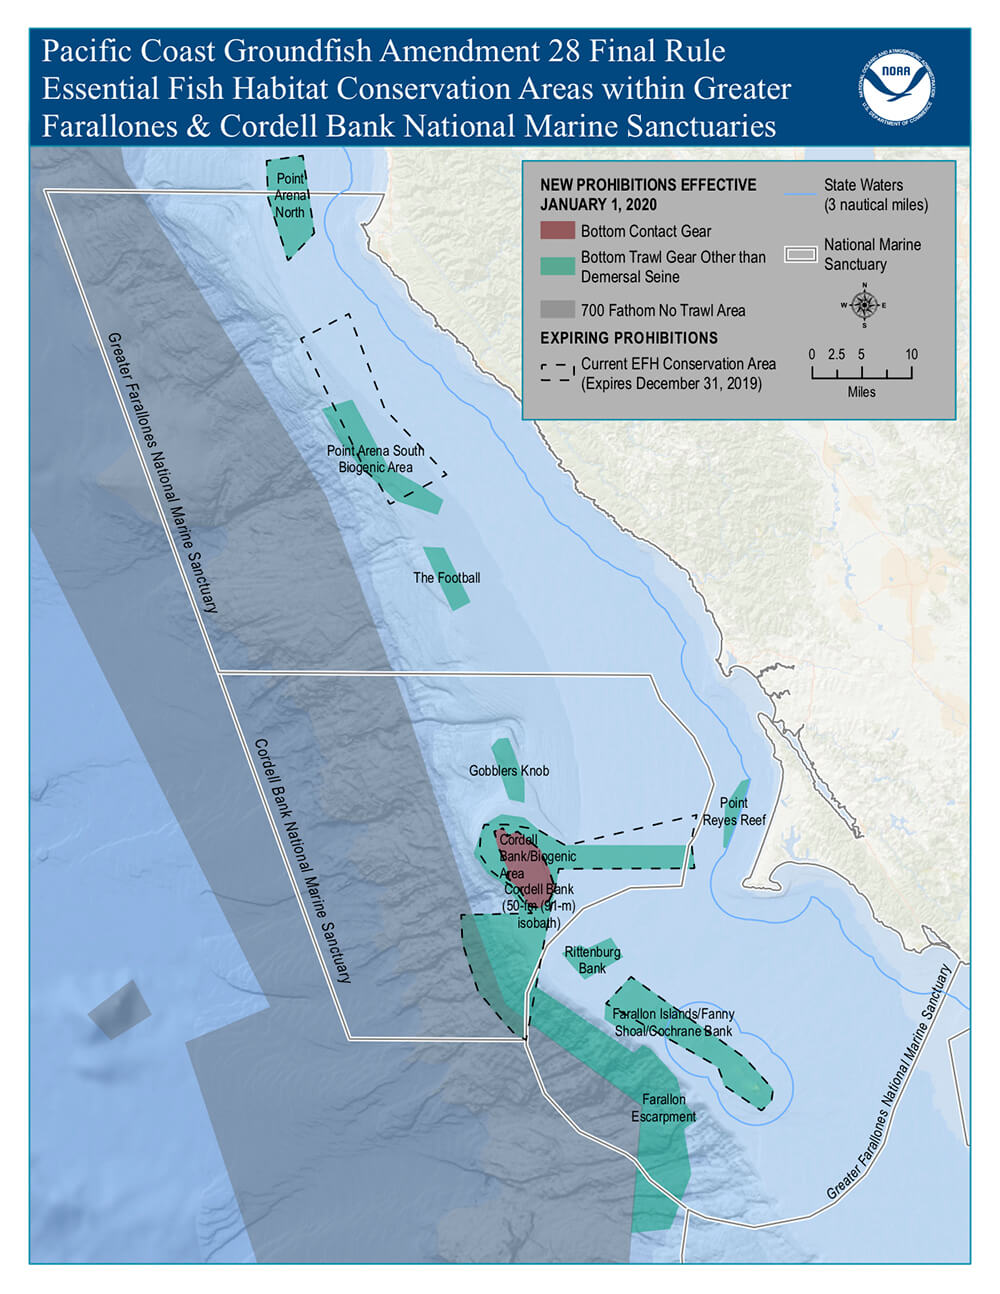 Map showing new Groundfish amendment 28 zones